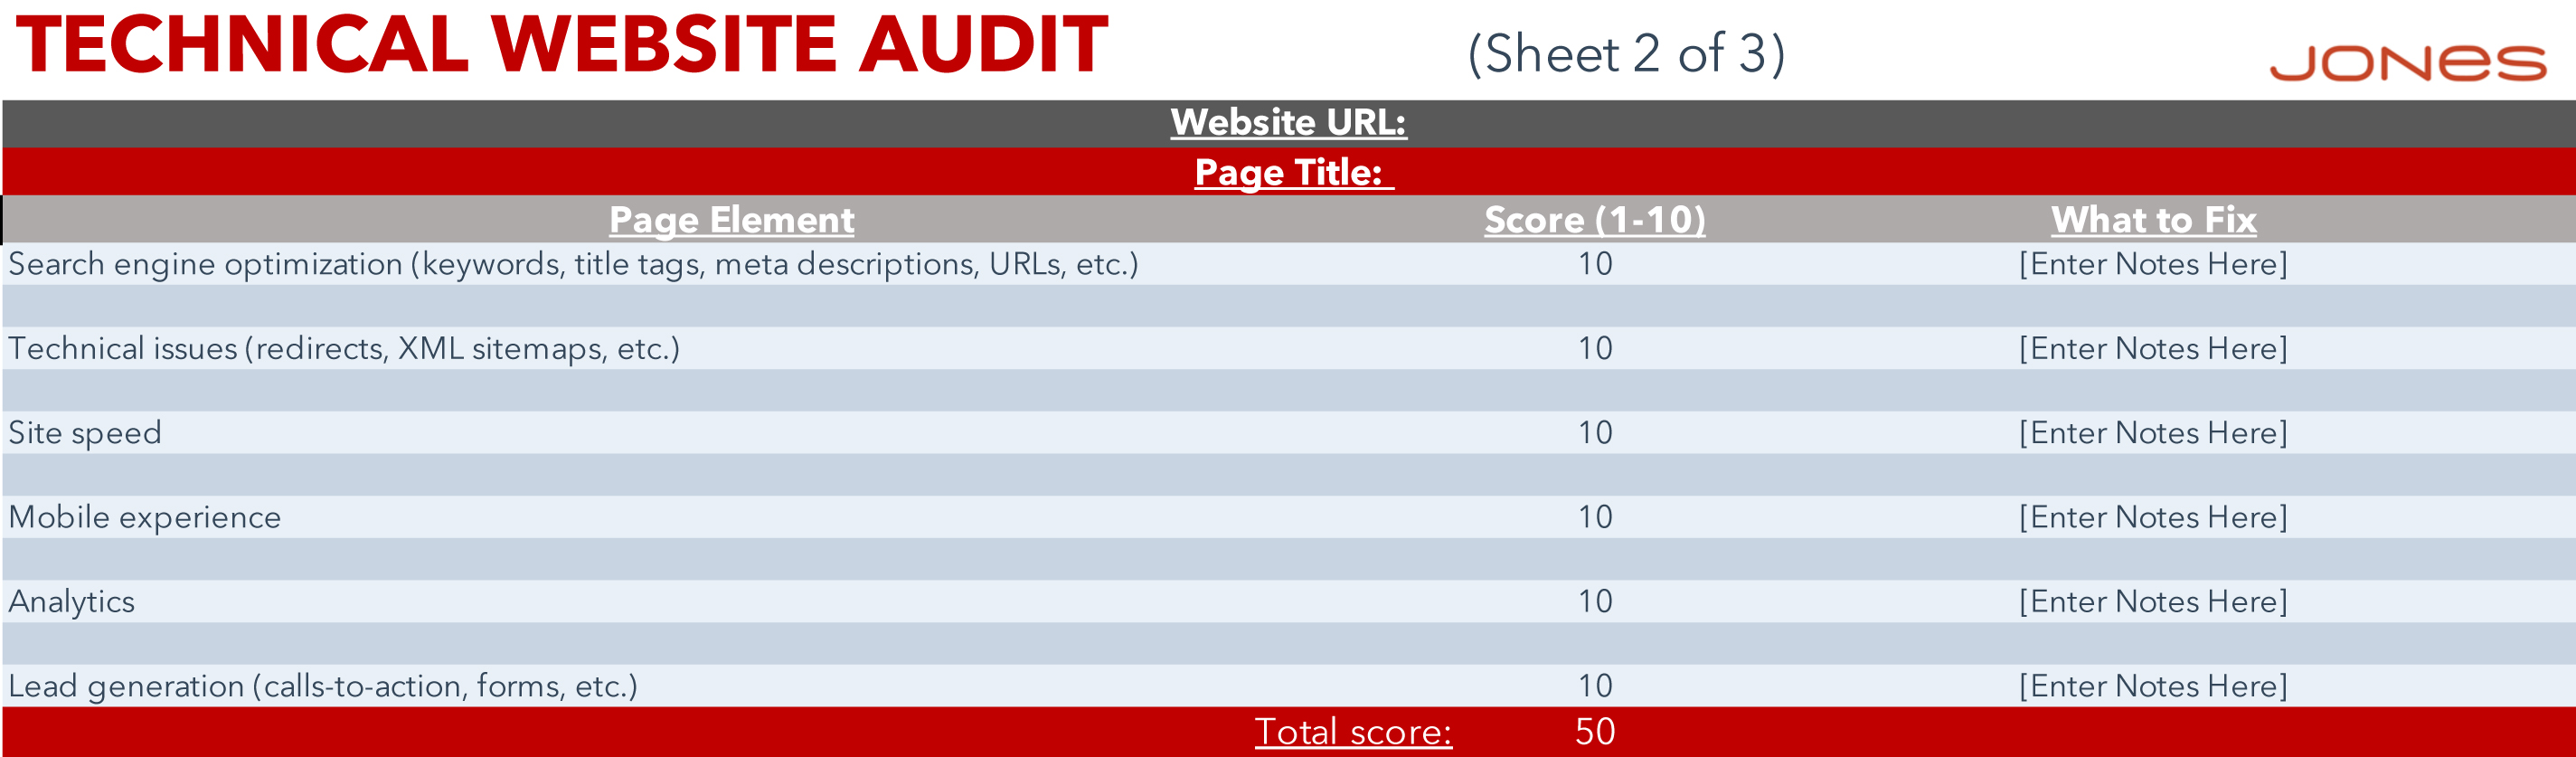 JONES Website Redesign Audit Template-technical